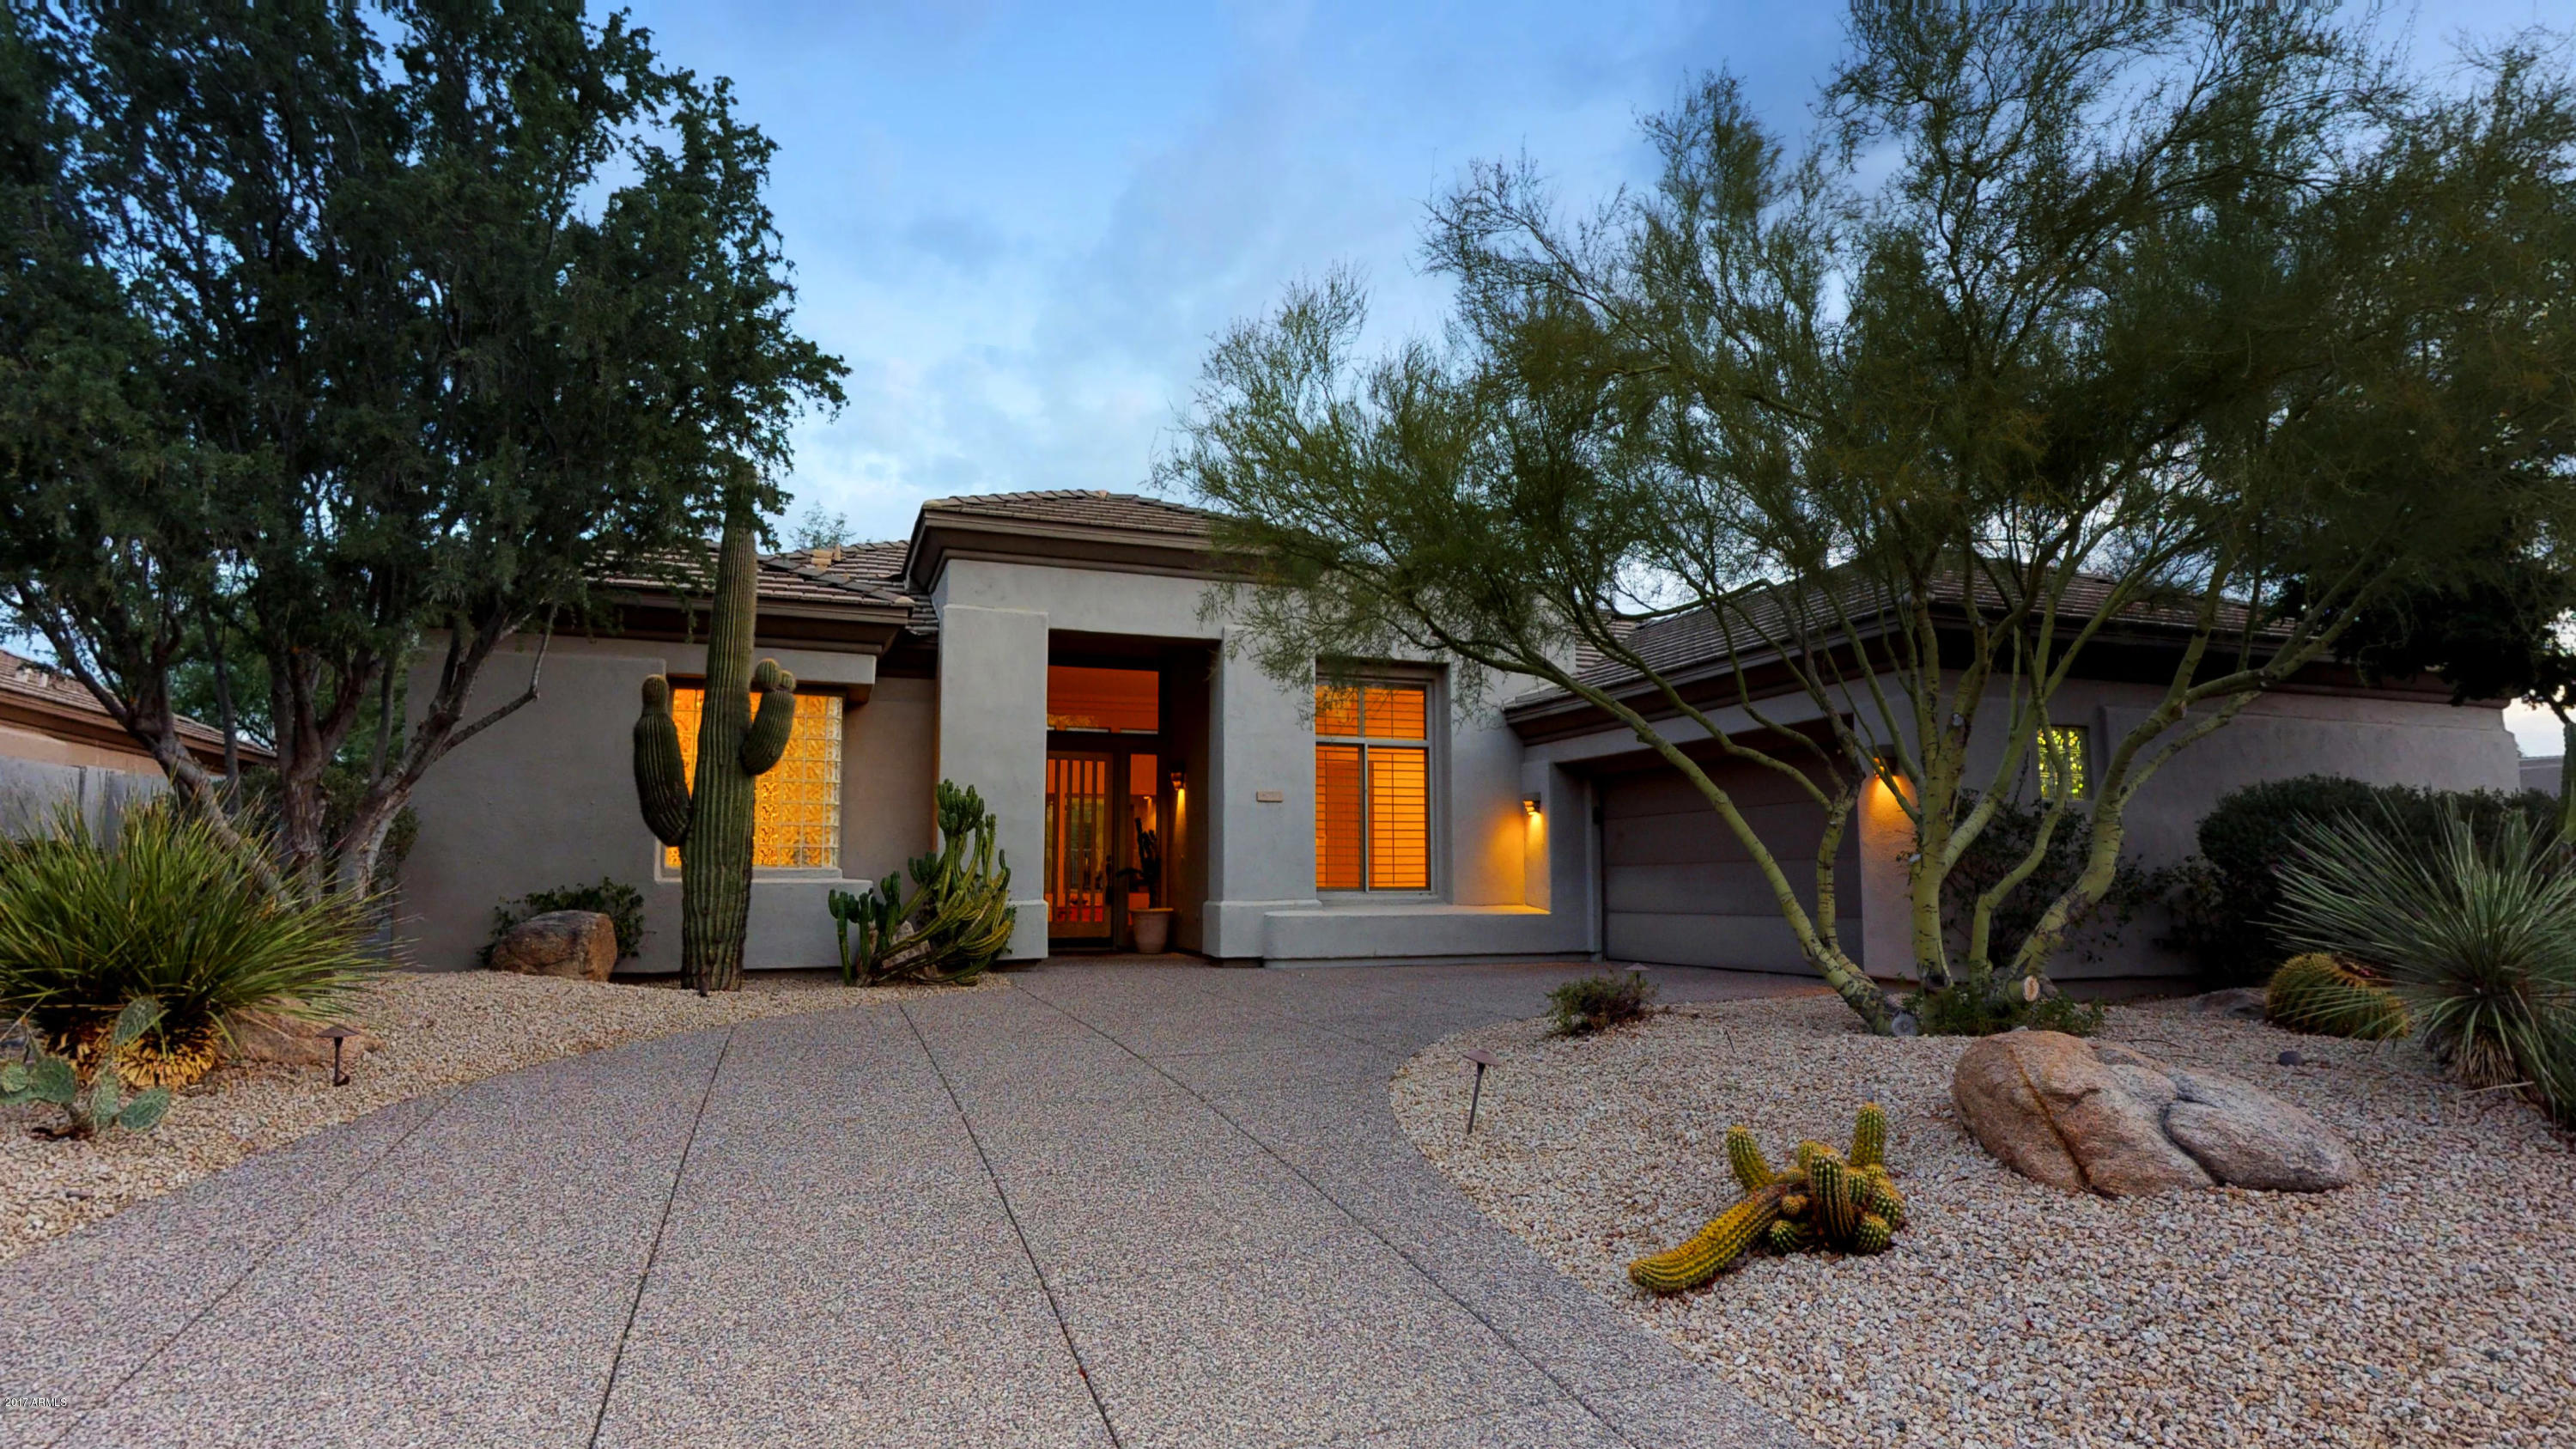 Photo of 6388 E MARIOCA Circle, Scottsdale, AZ 85266